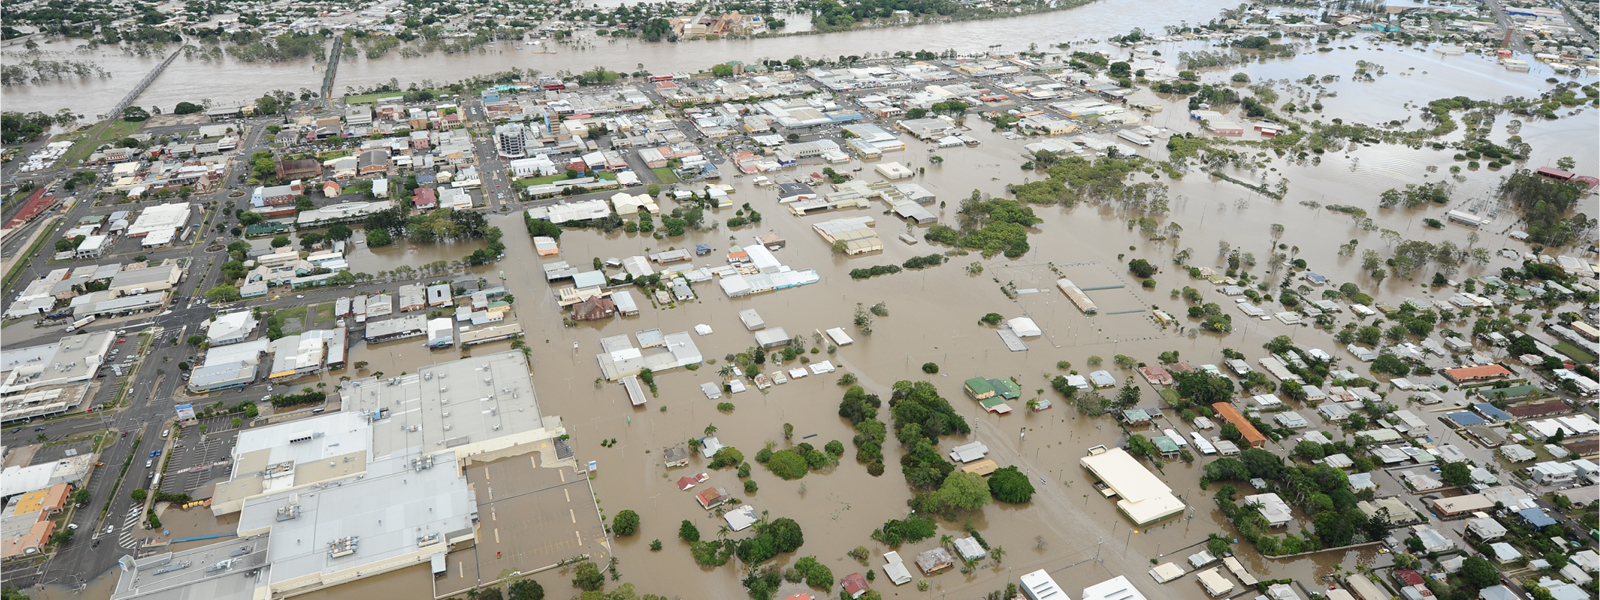 Aerial view of bundaberg under flood water